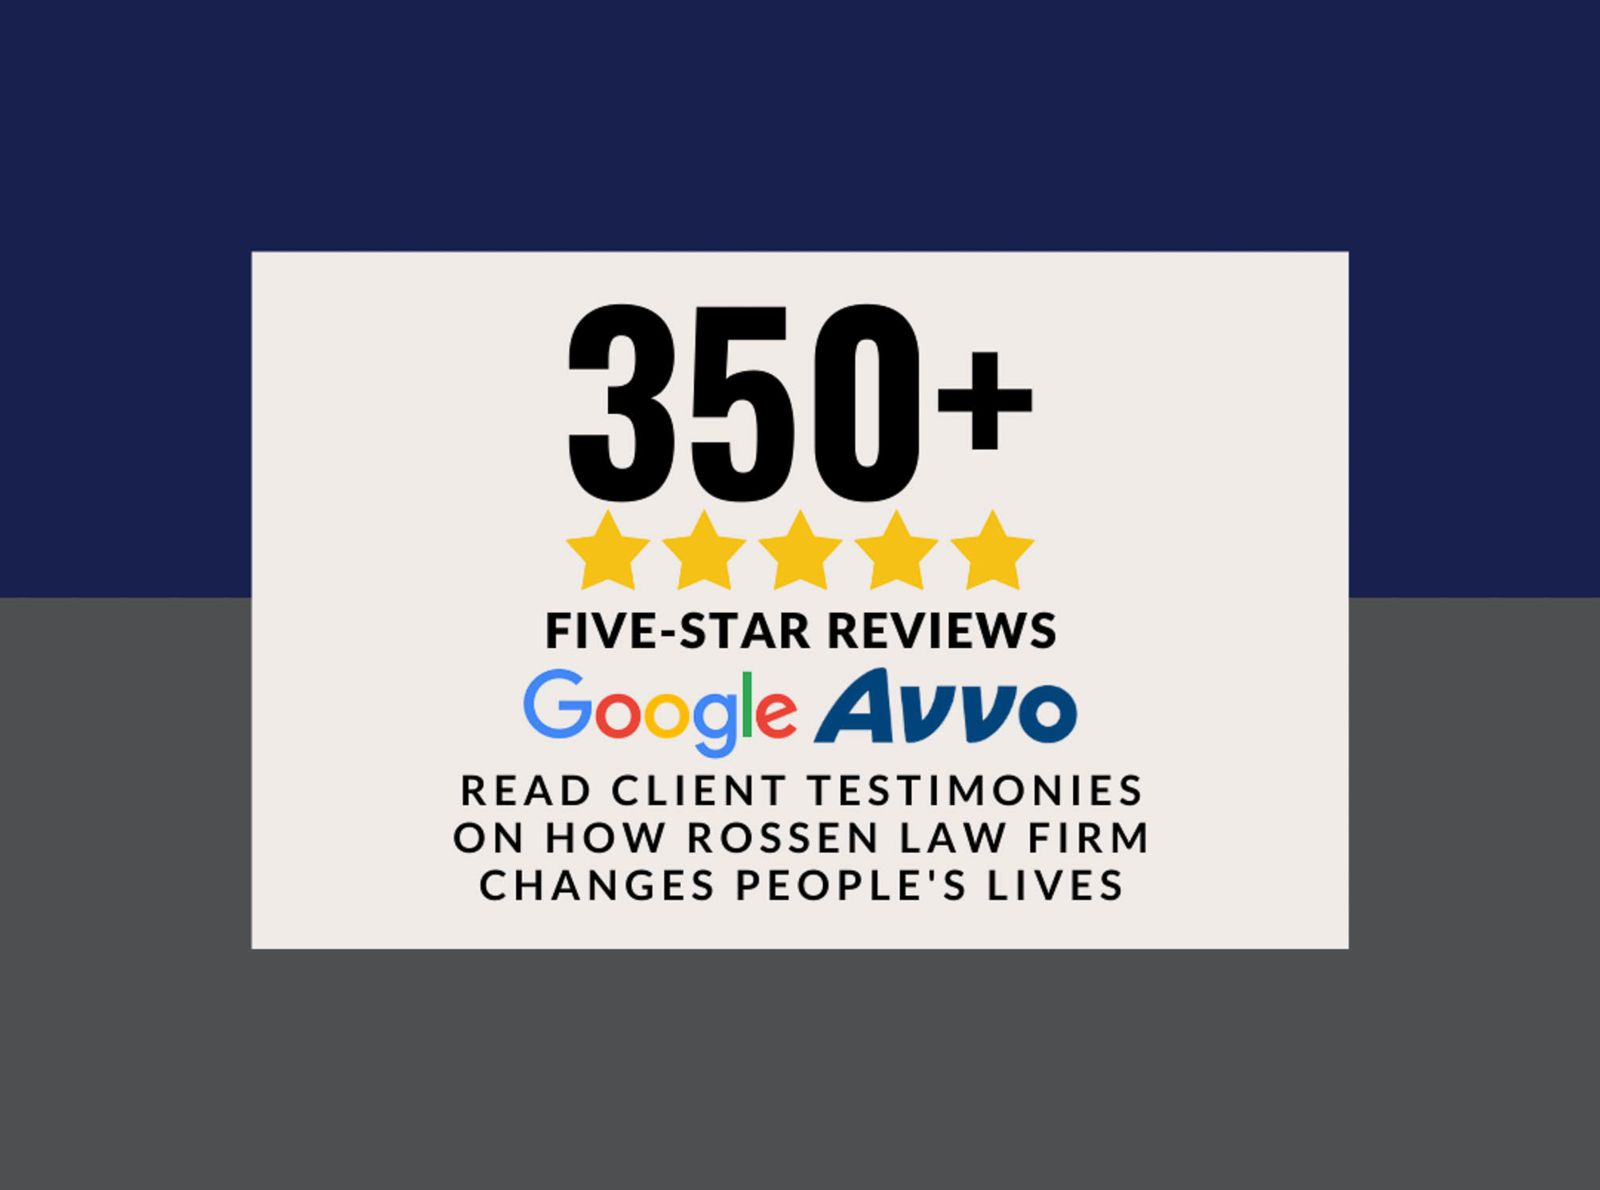 Drug and DUI Defense Attorneys get five star reviews from clients in Fort Lauderdale